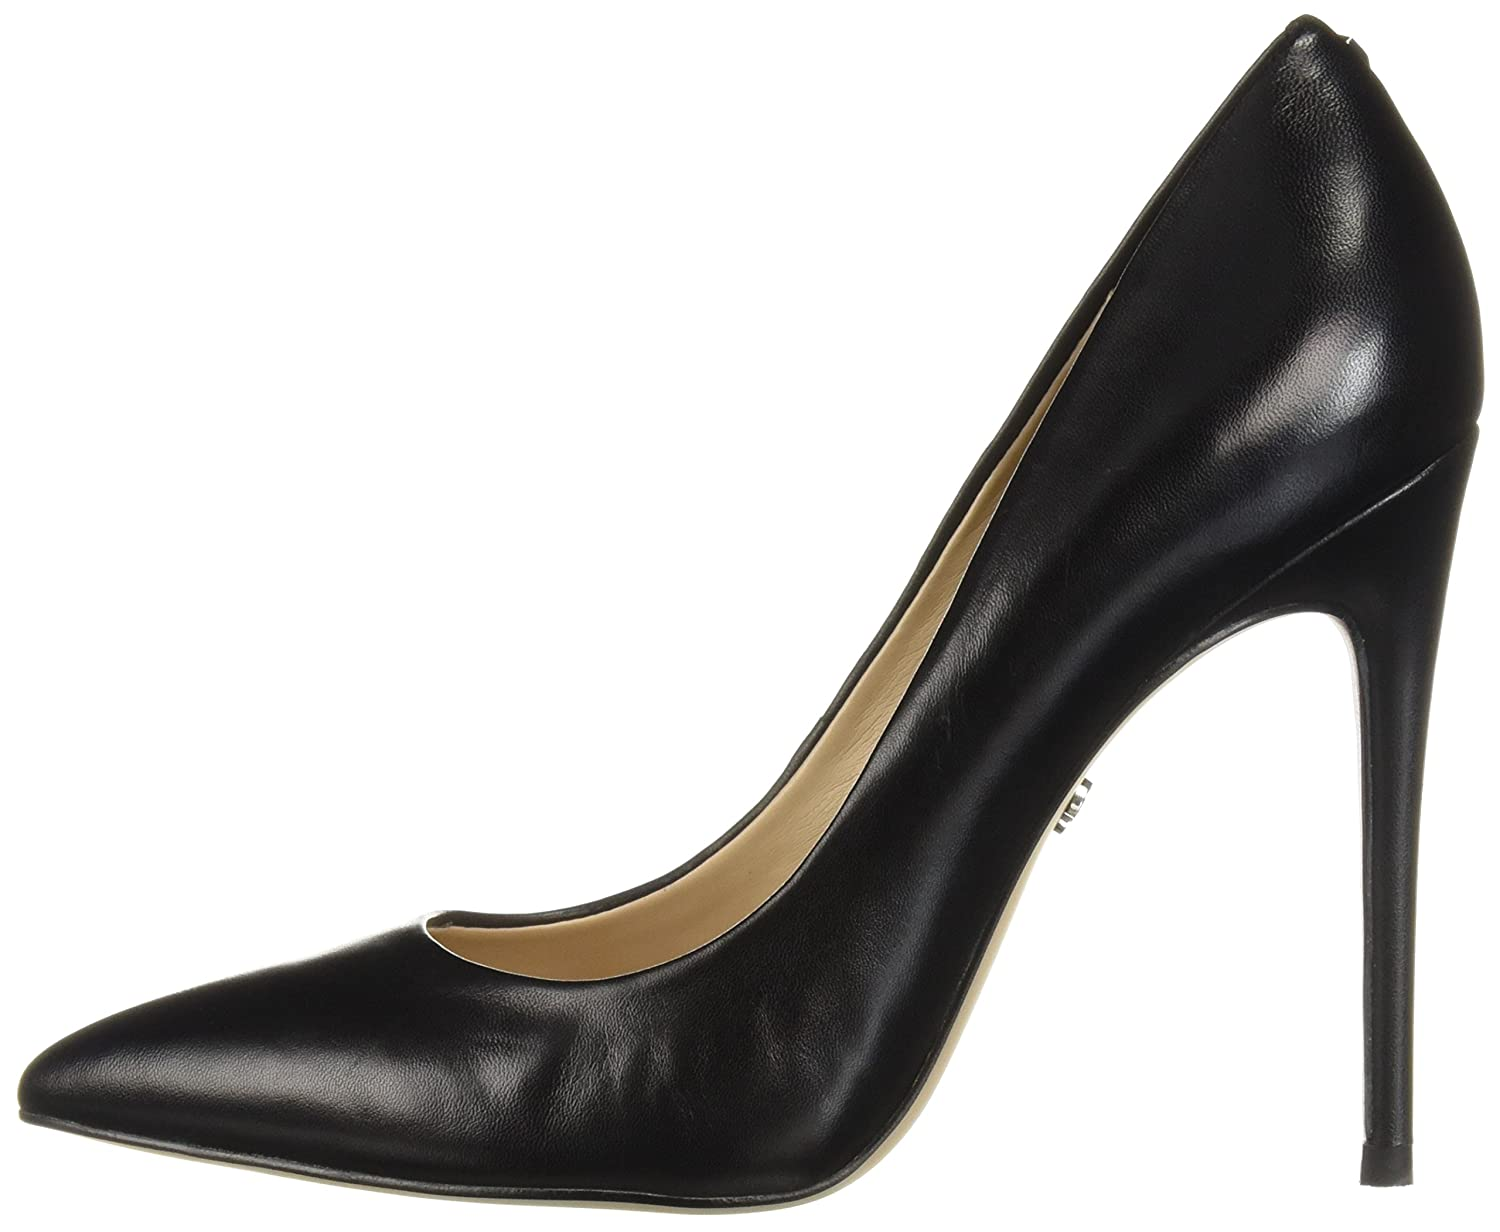 Sam Edelman Women's Danna Pump B07BQYX7TM 9 B(M) US|Black Leather